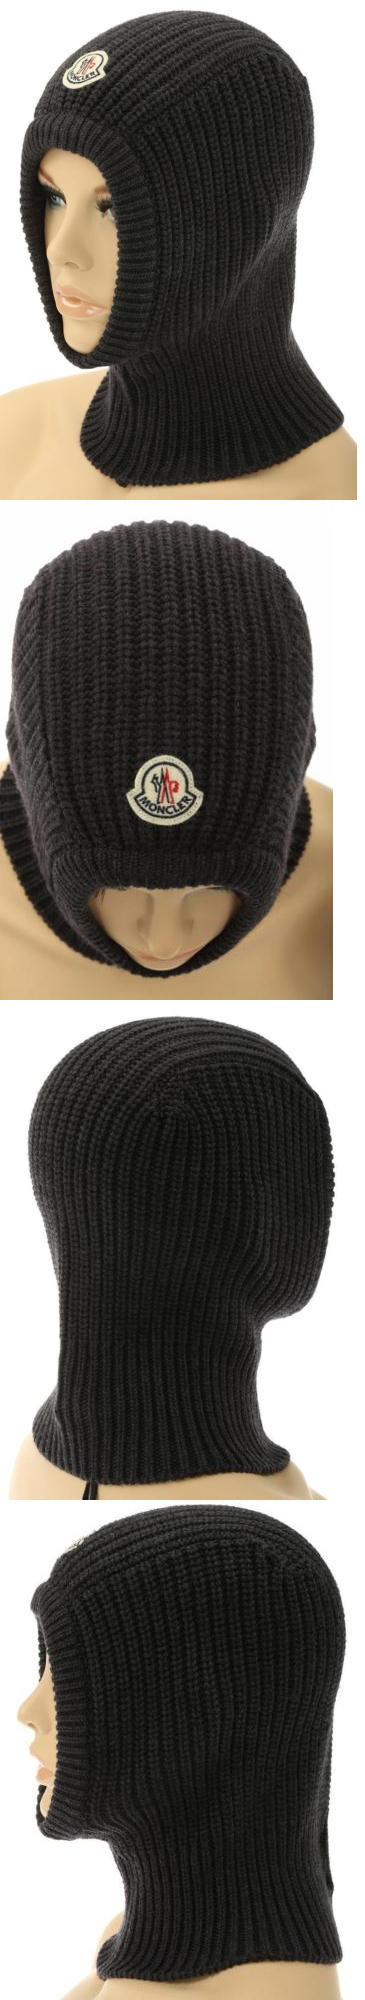 8bbf29f6edf Hats 45230  New Moncler Ladies Knit Gray Wool Logo Balaclava Ski Snow Mask  Hat One Size -  BUY IT NOW ONLY   79.99 on eBay!